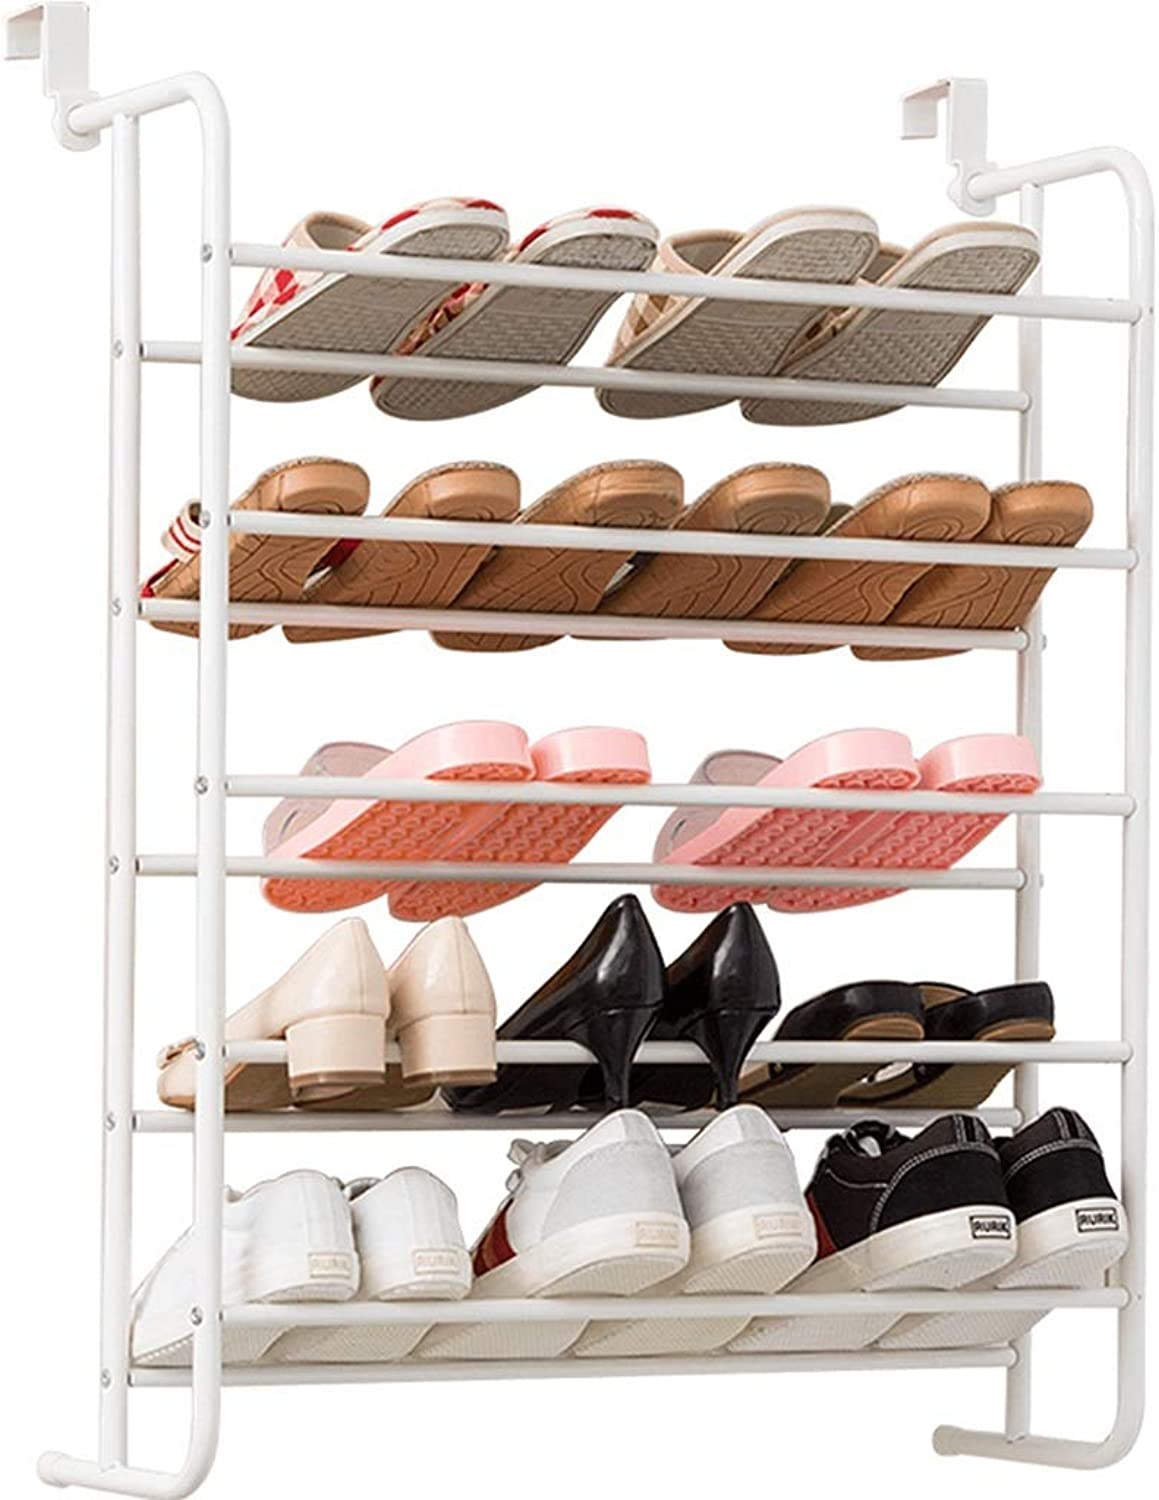 shoes Rack Storage Rack Hanging Multi-Layer shoes Rack Large-Capacity Anti-Corrosion Anti-Rust shoes Tower Home Stable Storage Rack (color   White, Size   65.5  22.4  88CM)